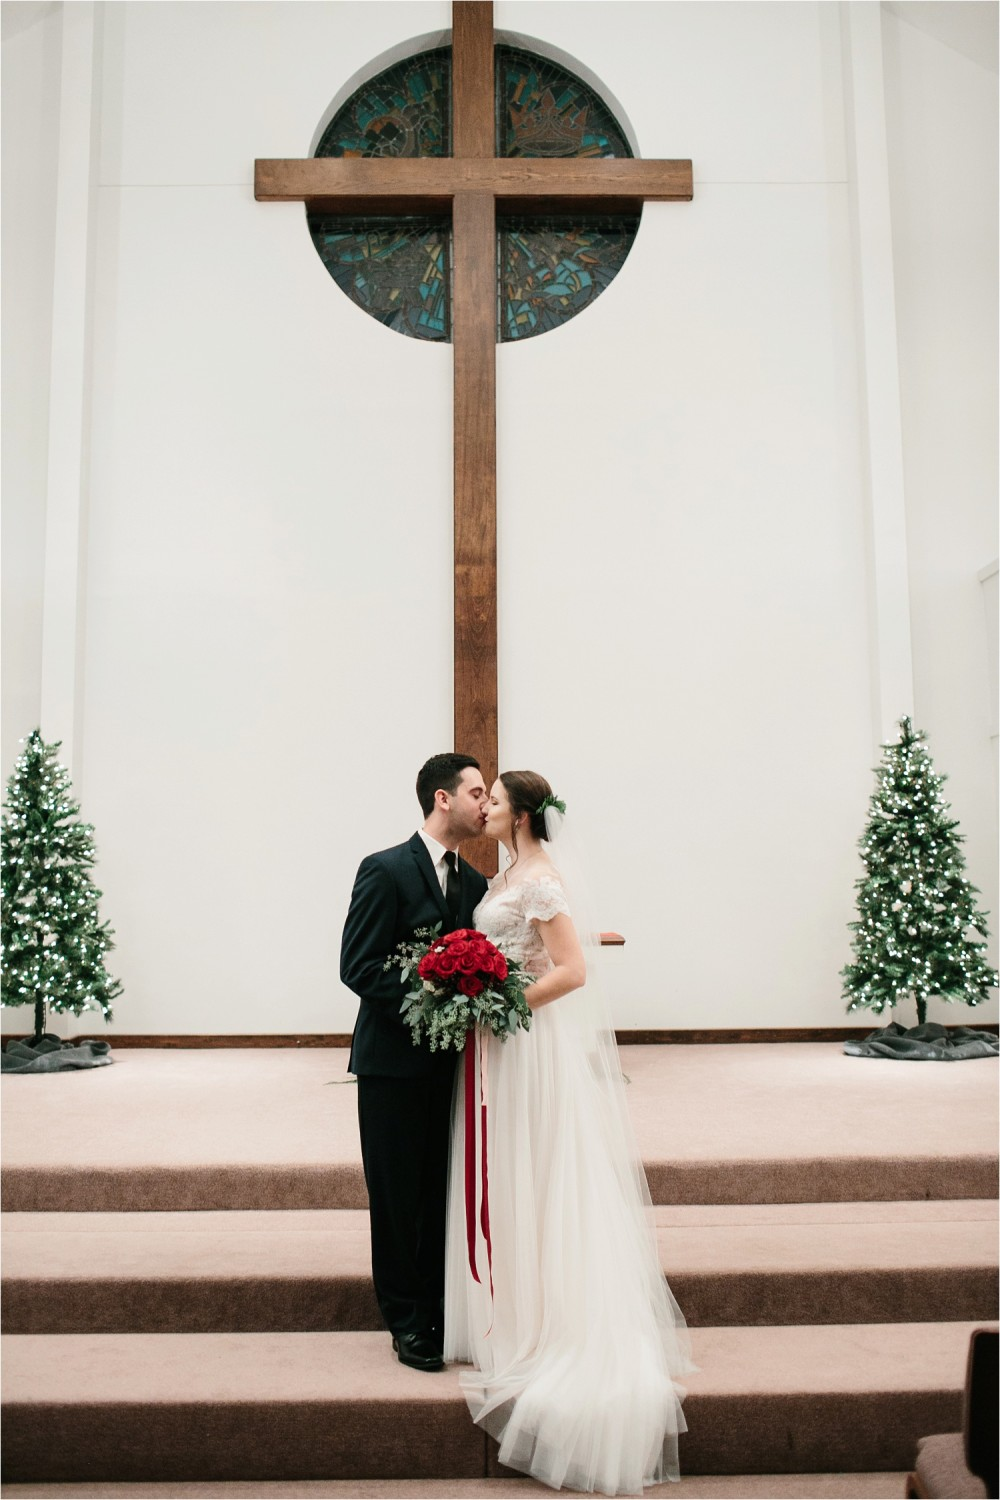 Alaina + Josh __ a wintertime wedding in Houston, TX with Christmas accents and a BHLDN dress by North Texas Wedding Photographer Rachel Meagan Photography _ 48